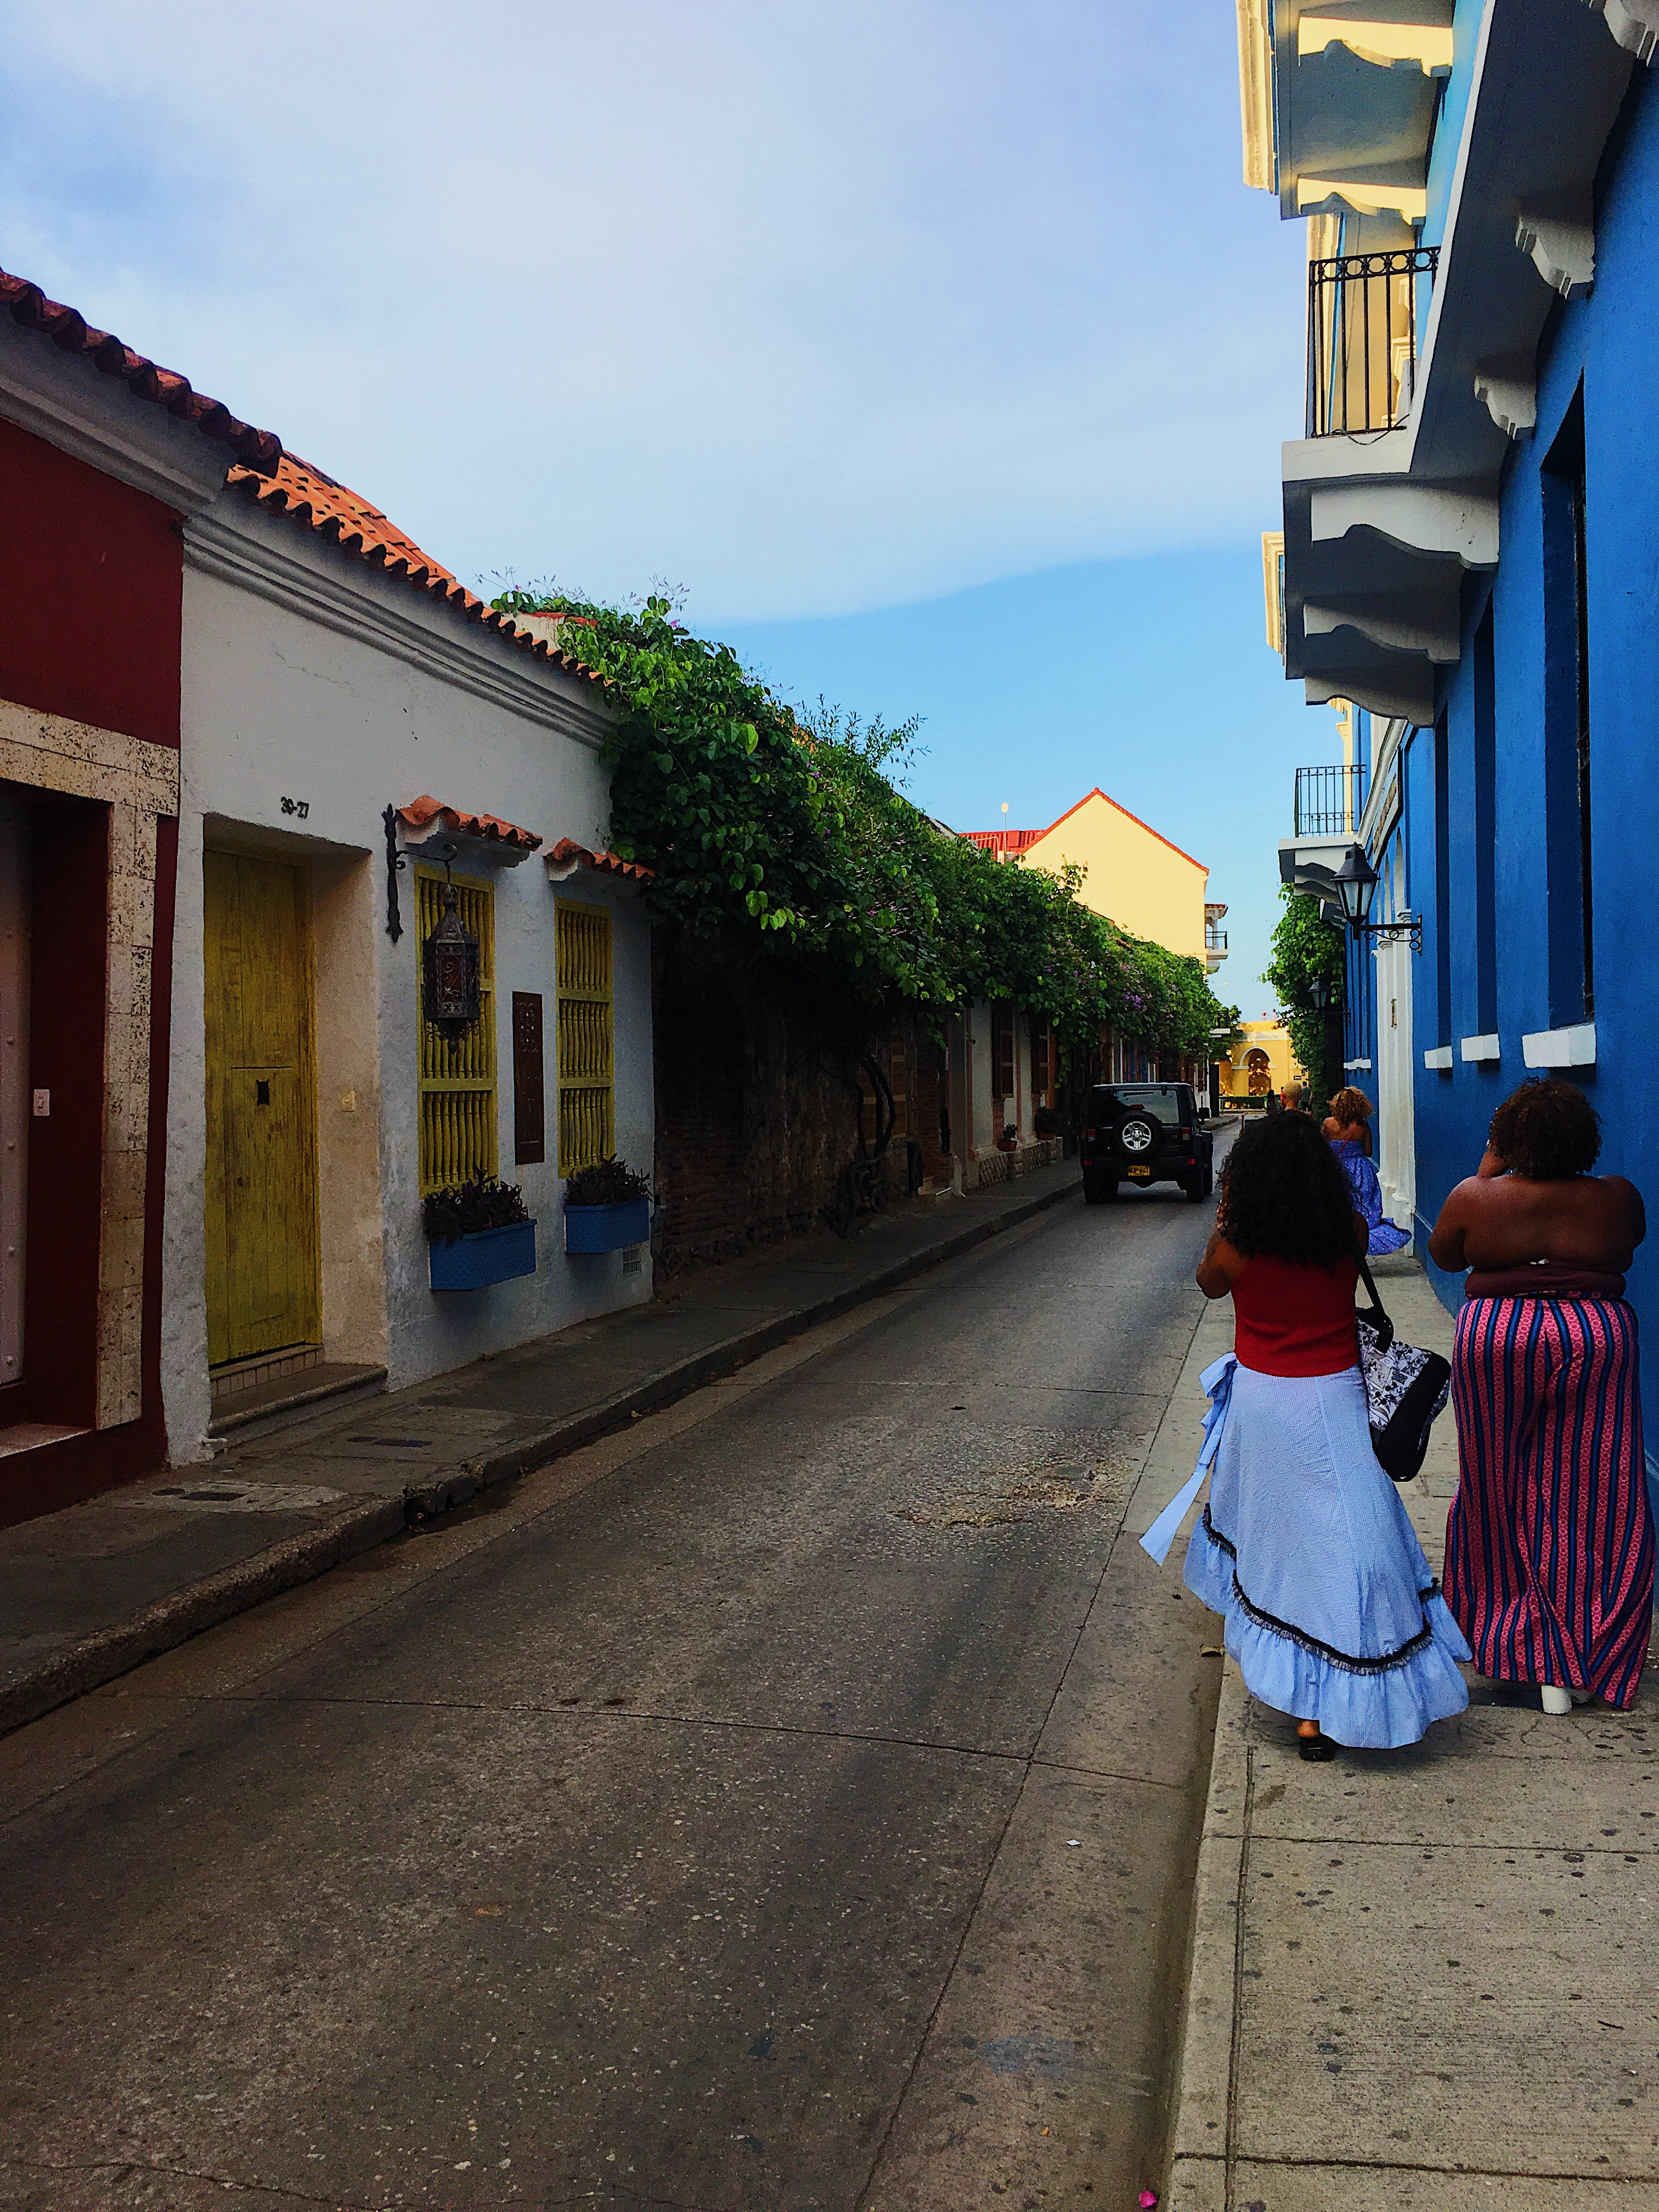 lcm-liveclothesminded-cartagena-colombia-walled city-old town